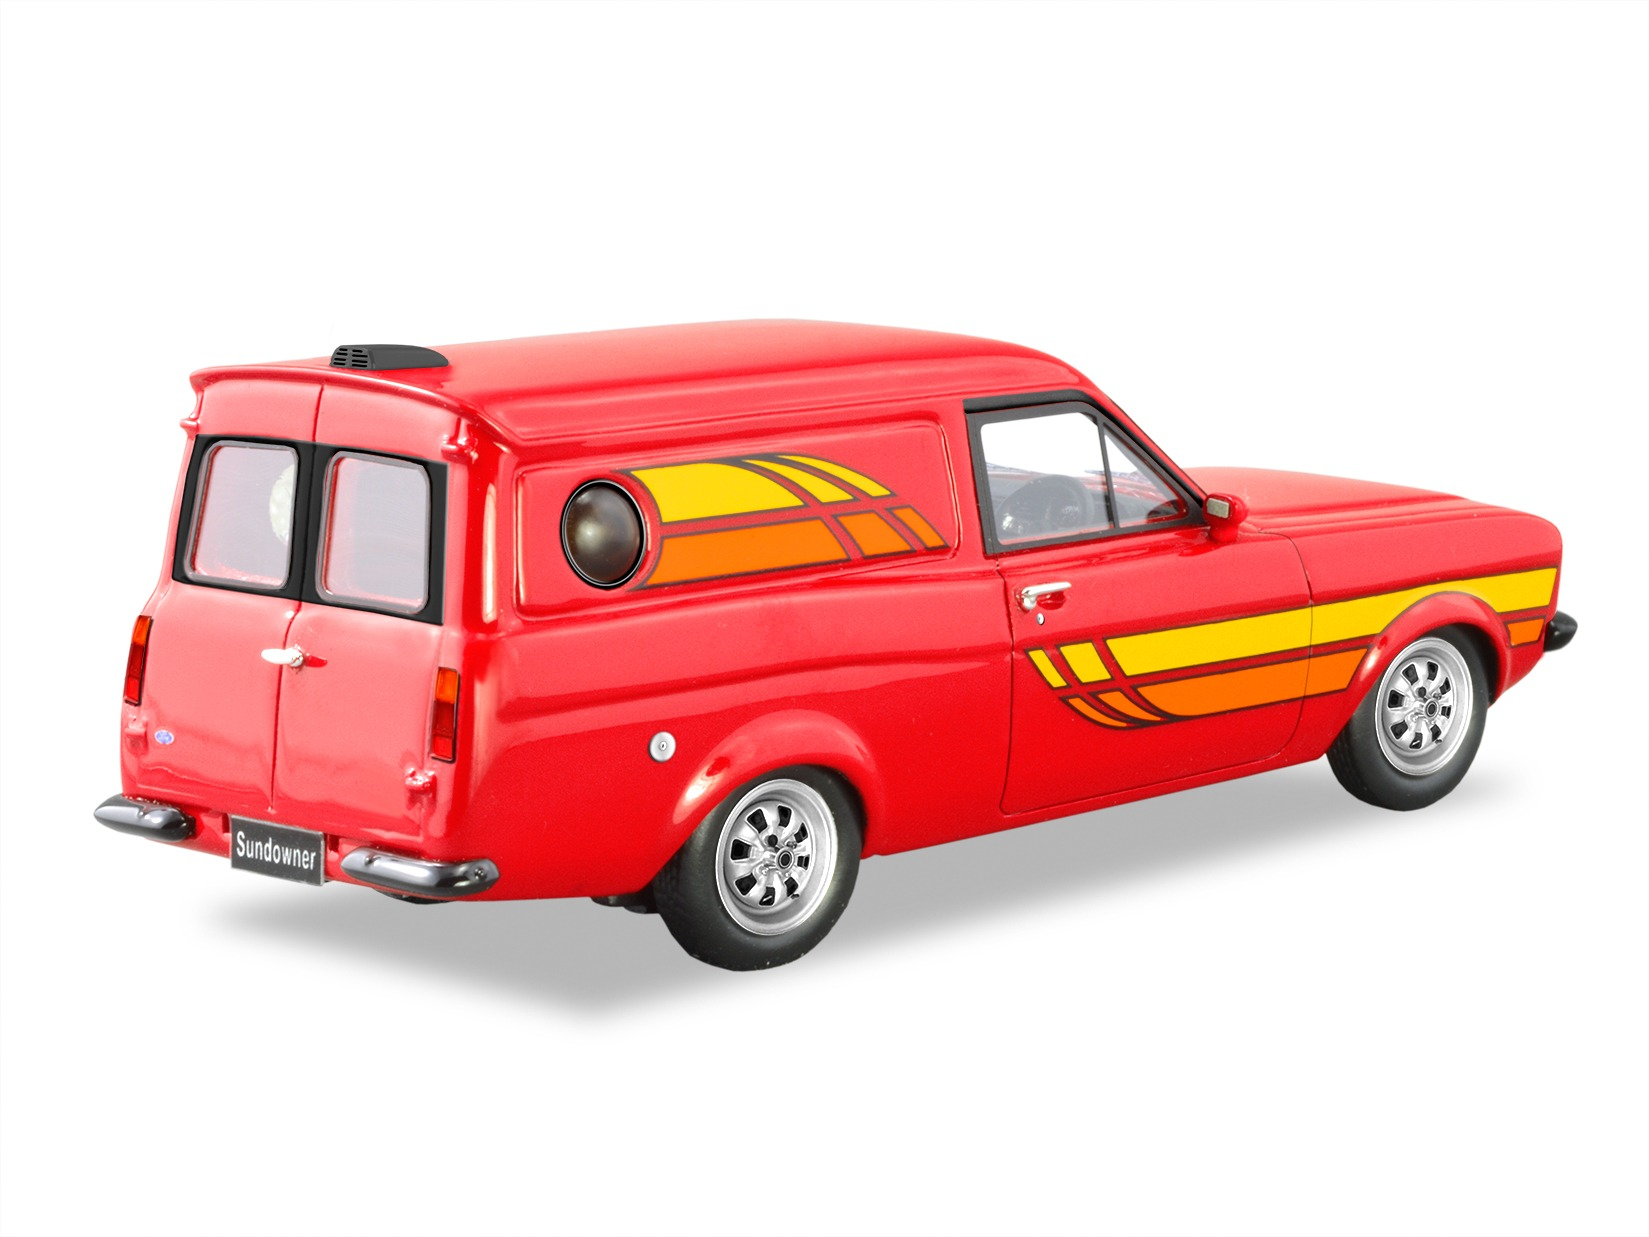 1978 Ford Escort Sundowner Panel Van – Red Flame